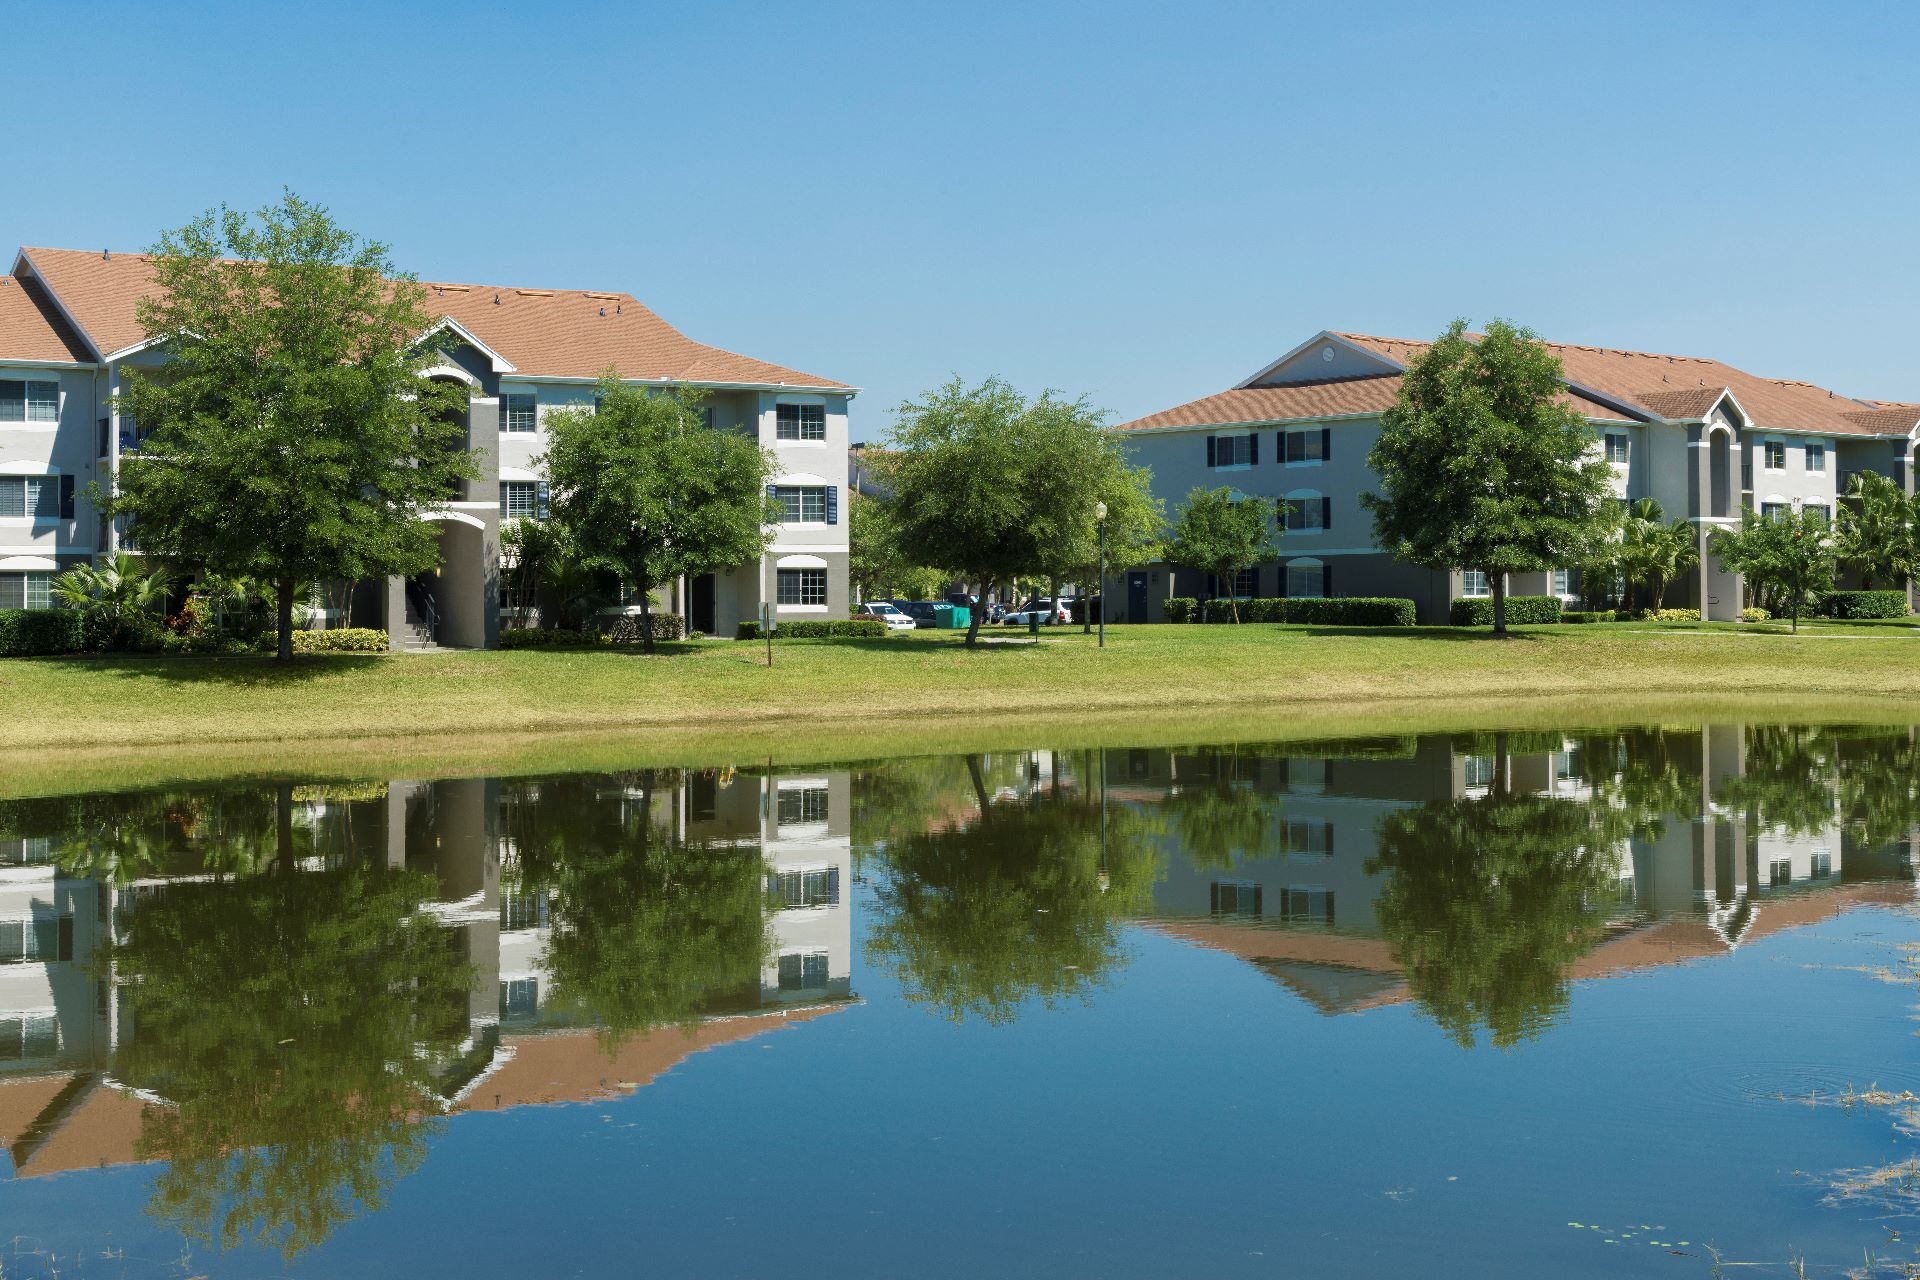 apartment buildings with reflection in lake